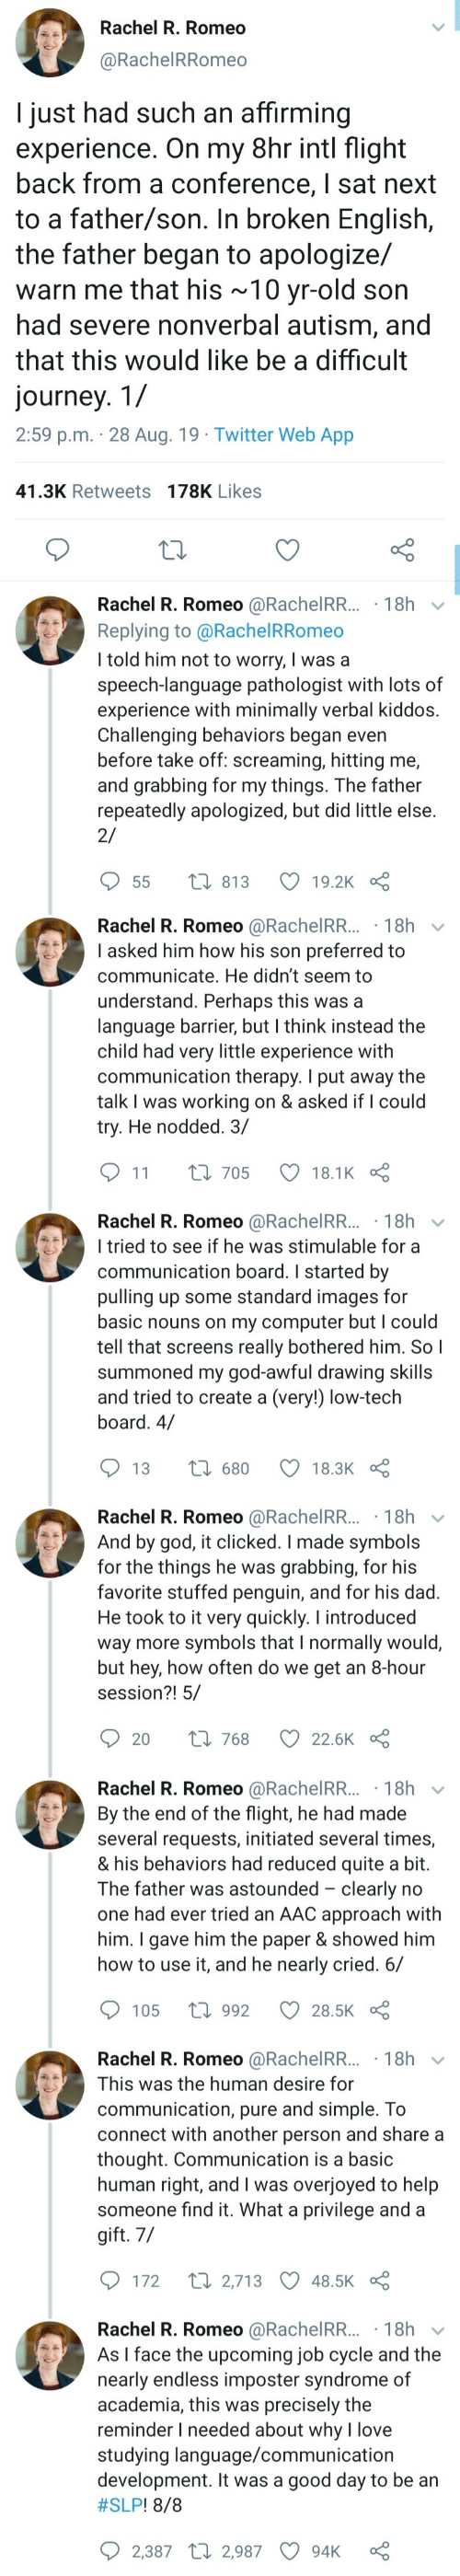 If He: Rachel R. Romeo  @RachelRRomeo  I just had such an affirming  experience. On my 8hr intl flight  back from a conference, I sat next  to a father/son. In broken English,  the father began to apologize/  warn me that his ~10 yr-old son  had severe nonverbal autism, and  that this would like be a difficult  journey. 1/  2:59 p.m. 28 Aug. 19 Twitter Web App  41.3K Retweets 178K Likes  Rachel R. Romeo @RachelRR... 18h  Replying to @Rachel RRomeo  I told him not to worry, I was a  speech-language pathologist with lots of  experience with minimally verbal kiddos.  Challenging behaviors began even  before take off: screaming, hitting me,  and grabbing for my things. The father  repeatedly apologized, but did little else  2/  t 813  19.2K  55   Rachel R. Romeo @RachelRR...18h  I asked him how his son preferred to  communicate. He didn't seem to  understand. Perhaps this was a  language barrier, but I think instead the  child had very little experience with  communication therapy. I put away the  talk I was working on & asked if I could  try. He nodded. 3/  11  L 705  18.1K  Rachel R. Romeo @RachelRR... 18h  I tried to see if he was stimulable for a  communication board. I started by  pulling up some standard images for  basic nouns on my computer but I could  tell that screens really bothered him. So I  summoned my god-awful drawing skills  and tried to create a (very!) low-tech  board. 4/  1680  13  18.3K  Rachel R. Romeo @RachelRR... 18h  And by god, it clicked. I made symbols  for the things he was  favorite stuffed penguin, and for his dad.  He took to it very quickly. I introduced  way more symbols that I normally would,  but hey, how often do we get an 8-hour  session?! 5/  grabbing, for his  Li 768  20  22.6K   Rachel R. Romeo @RachelRR... 18h  By the end of the flight, he had made  several requests, initiated several times,  & his behaviors had reduced quite a bit.  The father was astounded clearly no  one had ever tried an AAC approach with  him. I gave him the paper & showed him  how to use it, and he nearly cried. 6/  1992  105  28.5K  Rachel R. Romeo @RachelRR... 18h  This was the human desire for  communication, pure and simple. To  connect with another person and share a  thought. Communication is a basic  human right, and I was overjoyed to help  someone find it. What a privilege and a  gift. 7/  t 2,713 48.5K  172  Rachel R. Romeo @RachelRR... 18h  As I face the upcoming job cycle and the  nearly endless imposter syndrome of  academia, this was precisely the  reminder I needed about why l love  studying language/communication  development. It was a good day to be an  #SLP ! 8/8  2,387 2,987  94K